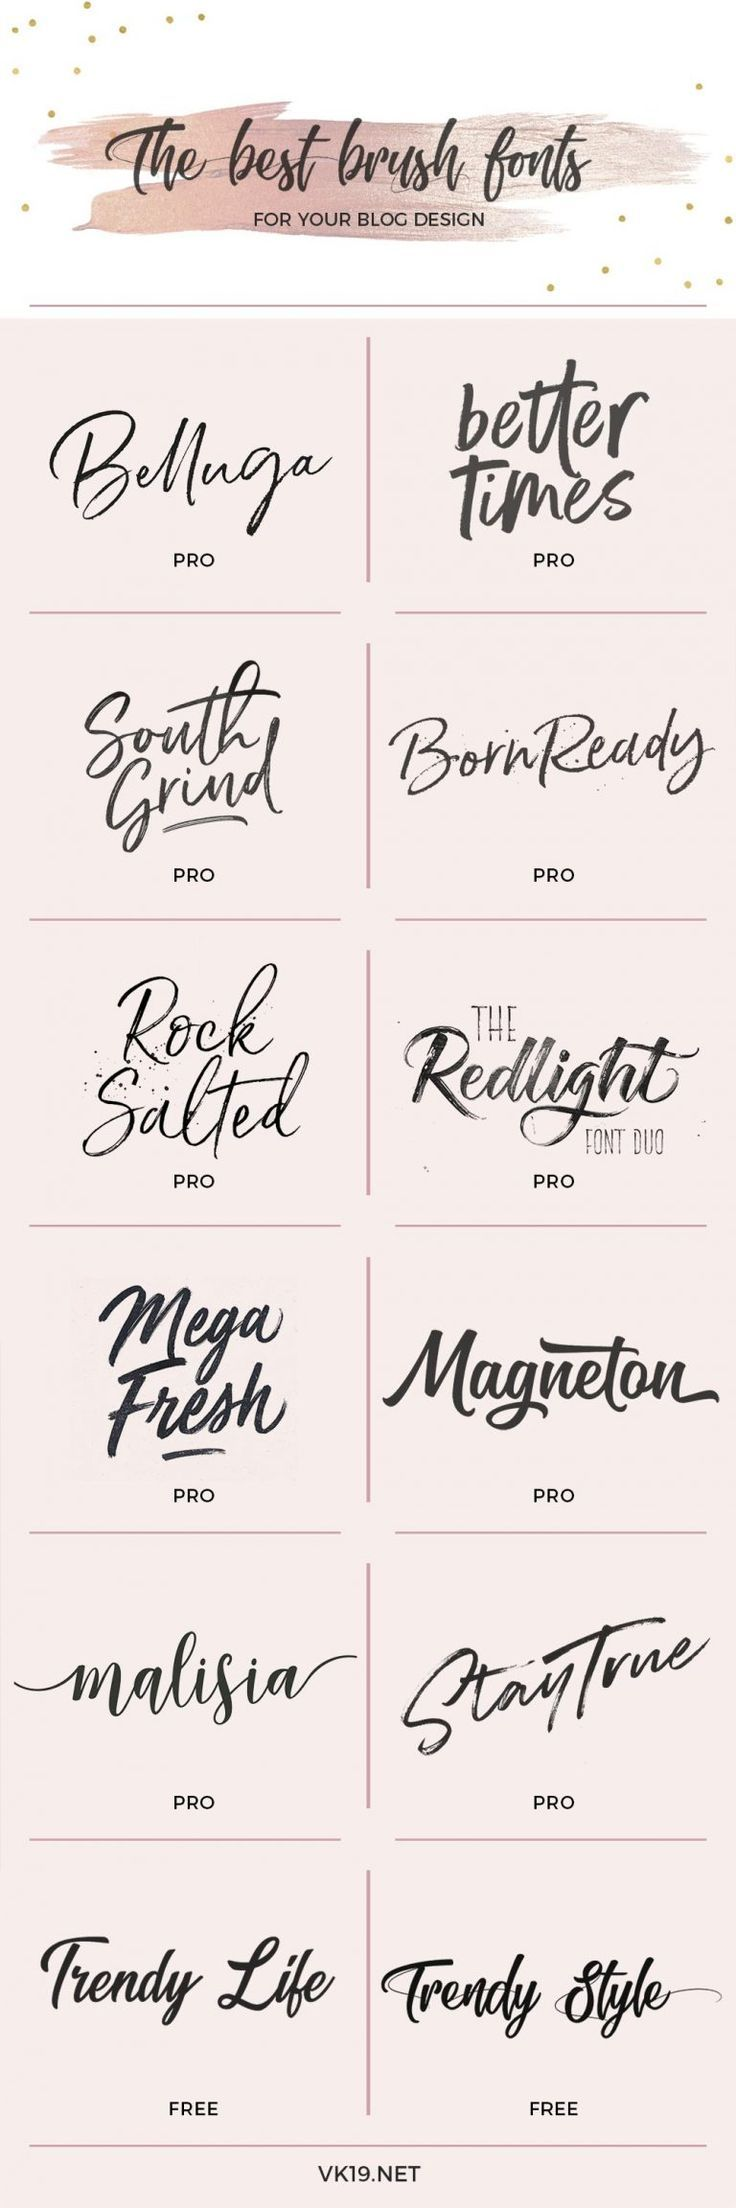 Font Kalligraphie Belluga Brush Rough Smooth Fonts Kalligraphie Schriftarten